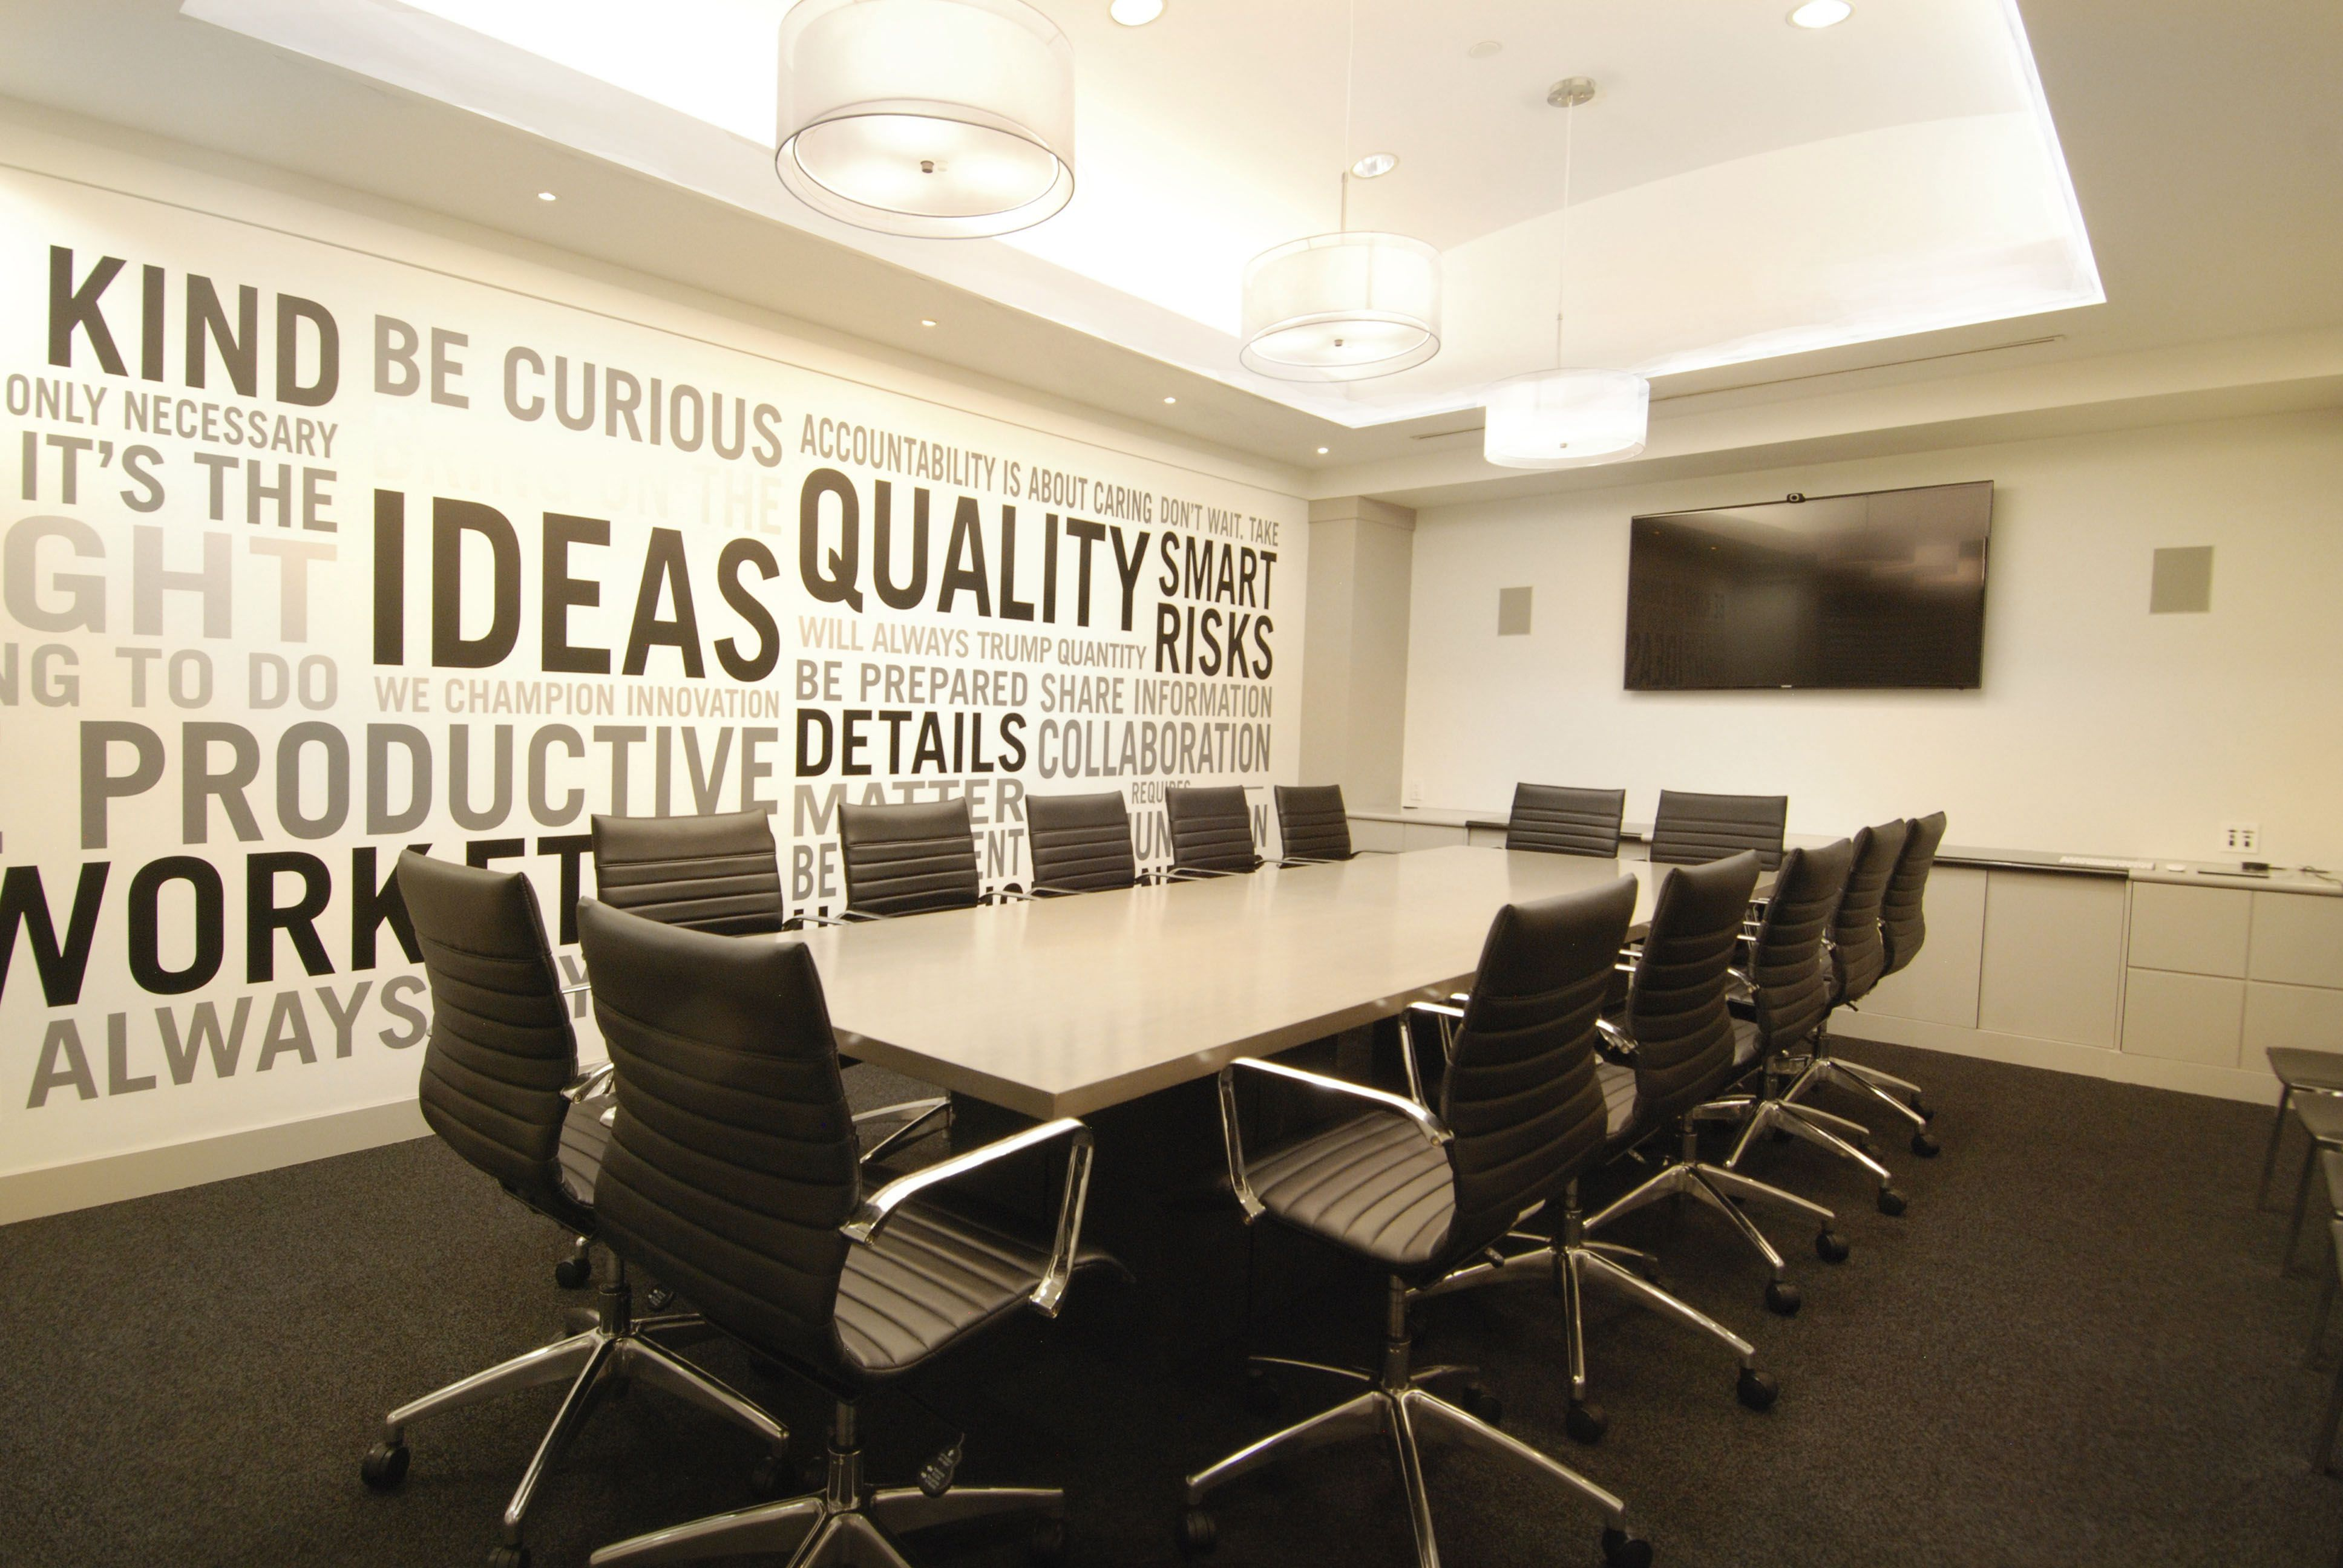 attractive conference room with black oval long table conference room wall decor ideas conference room av ideas conference room ceiling ideas conference - Conference Room Design Ideas